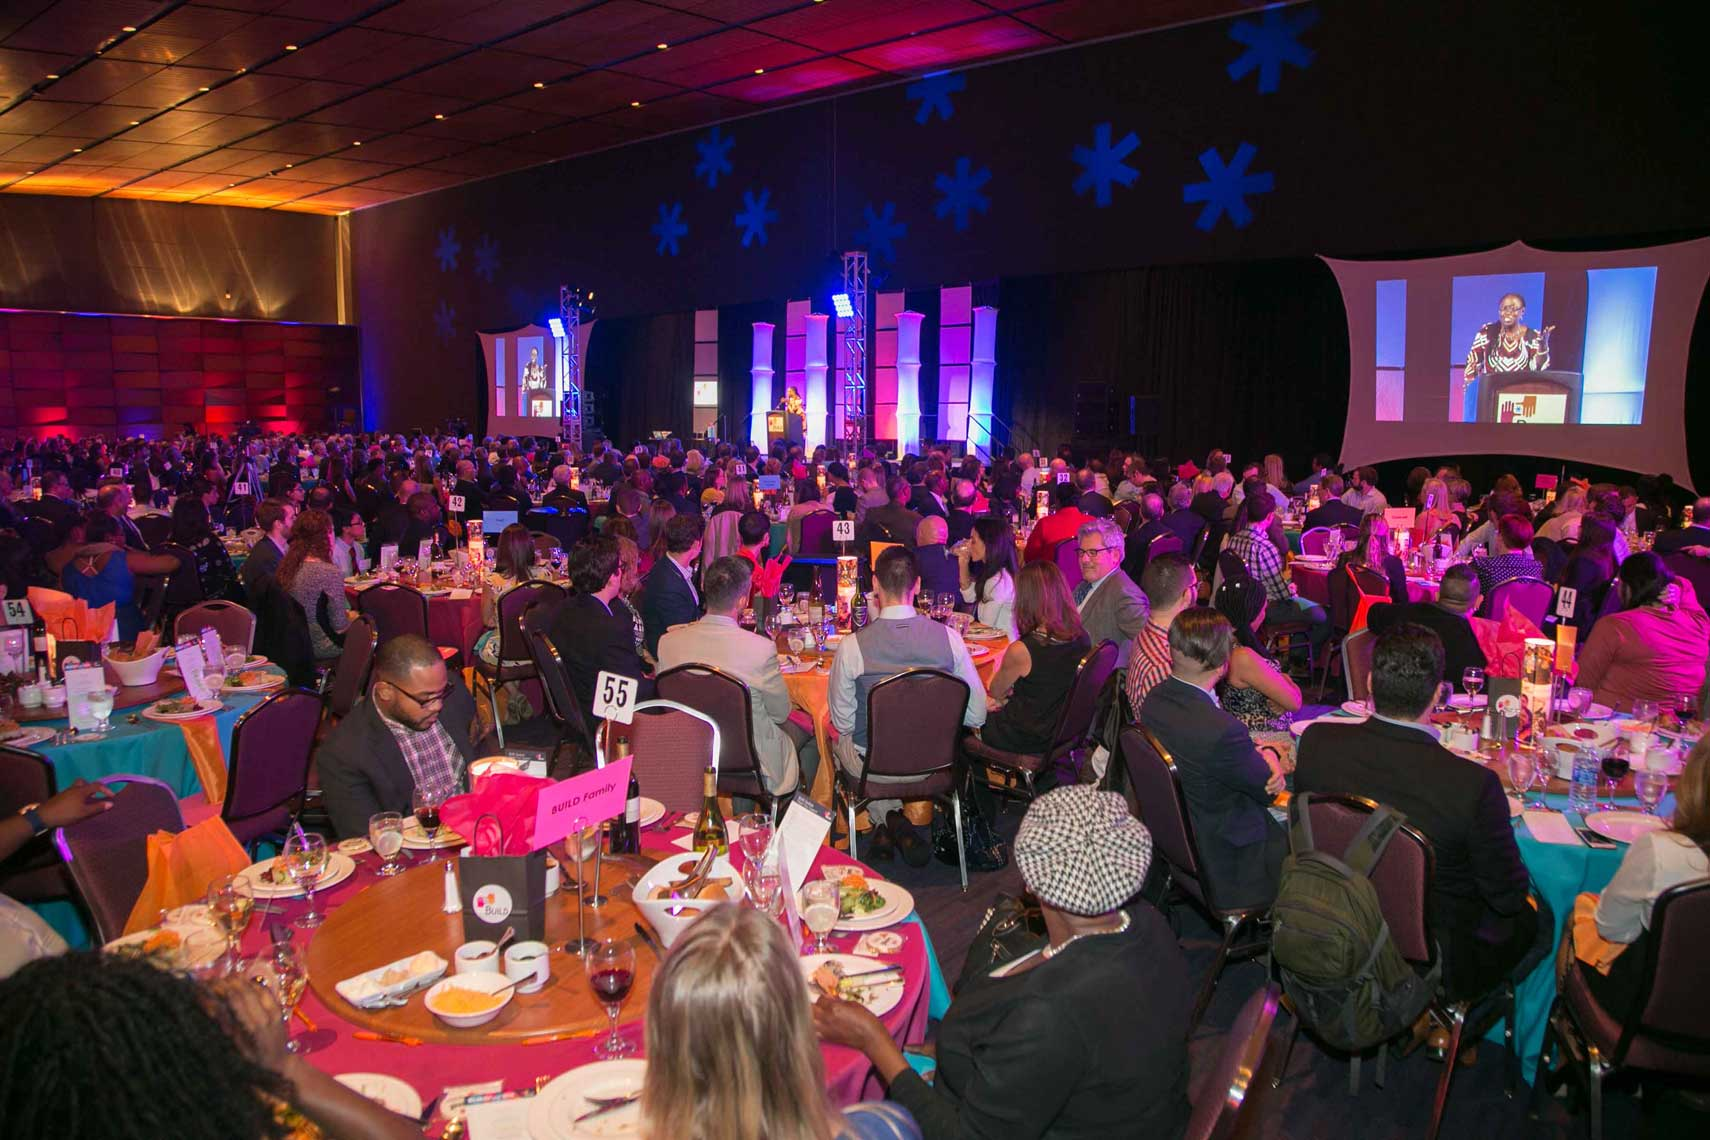 Guests Dining at Buid FestBoston 2016 Awards Gala